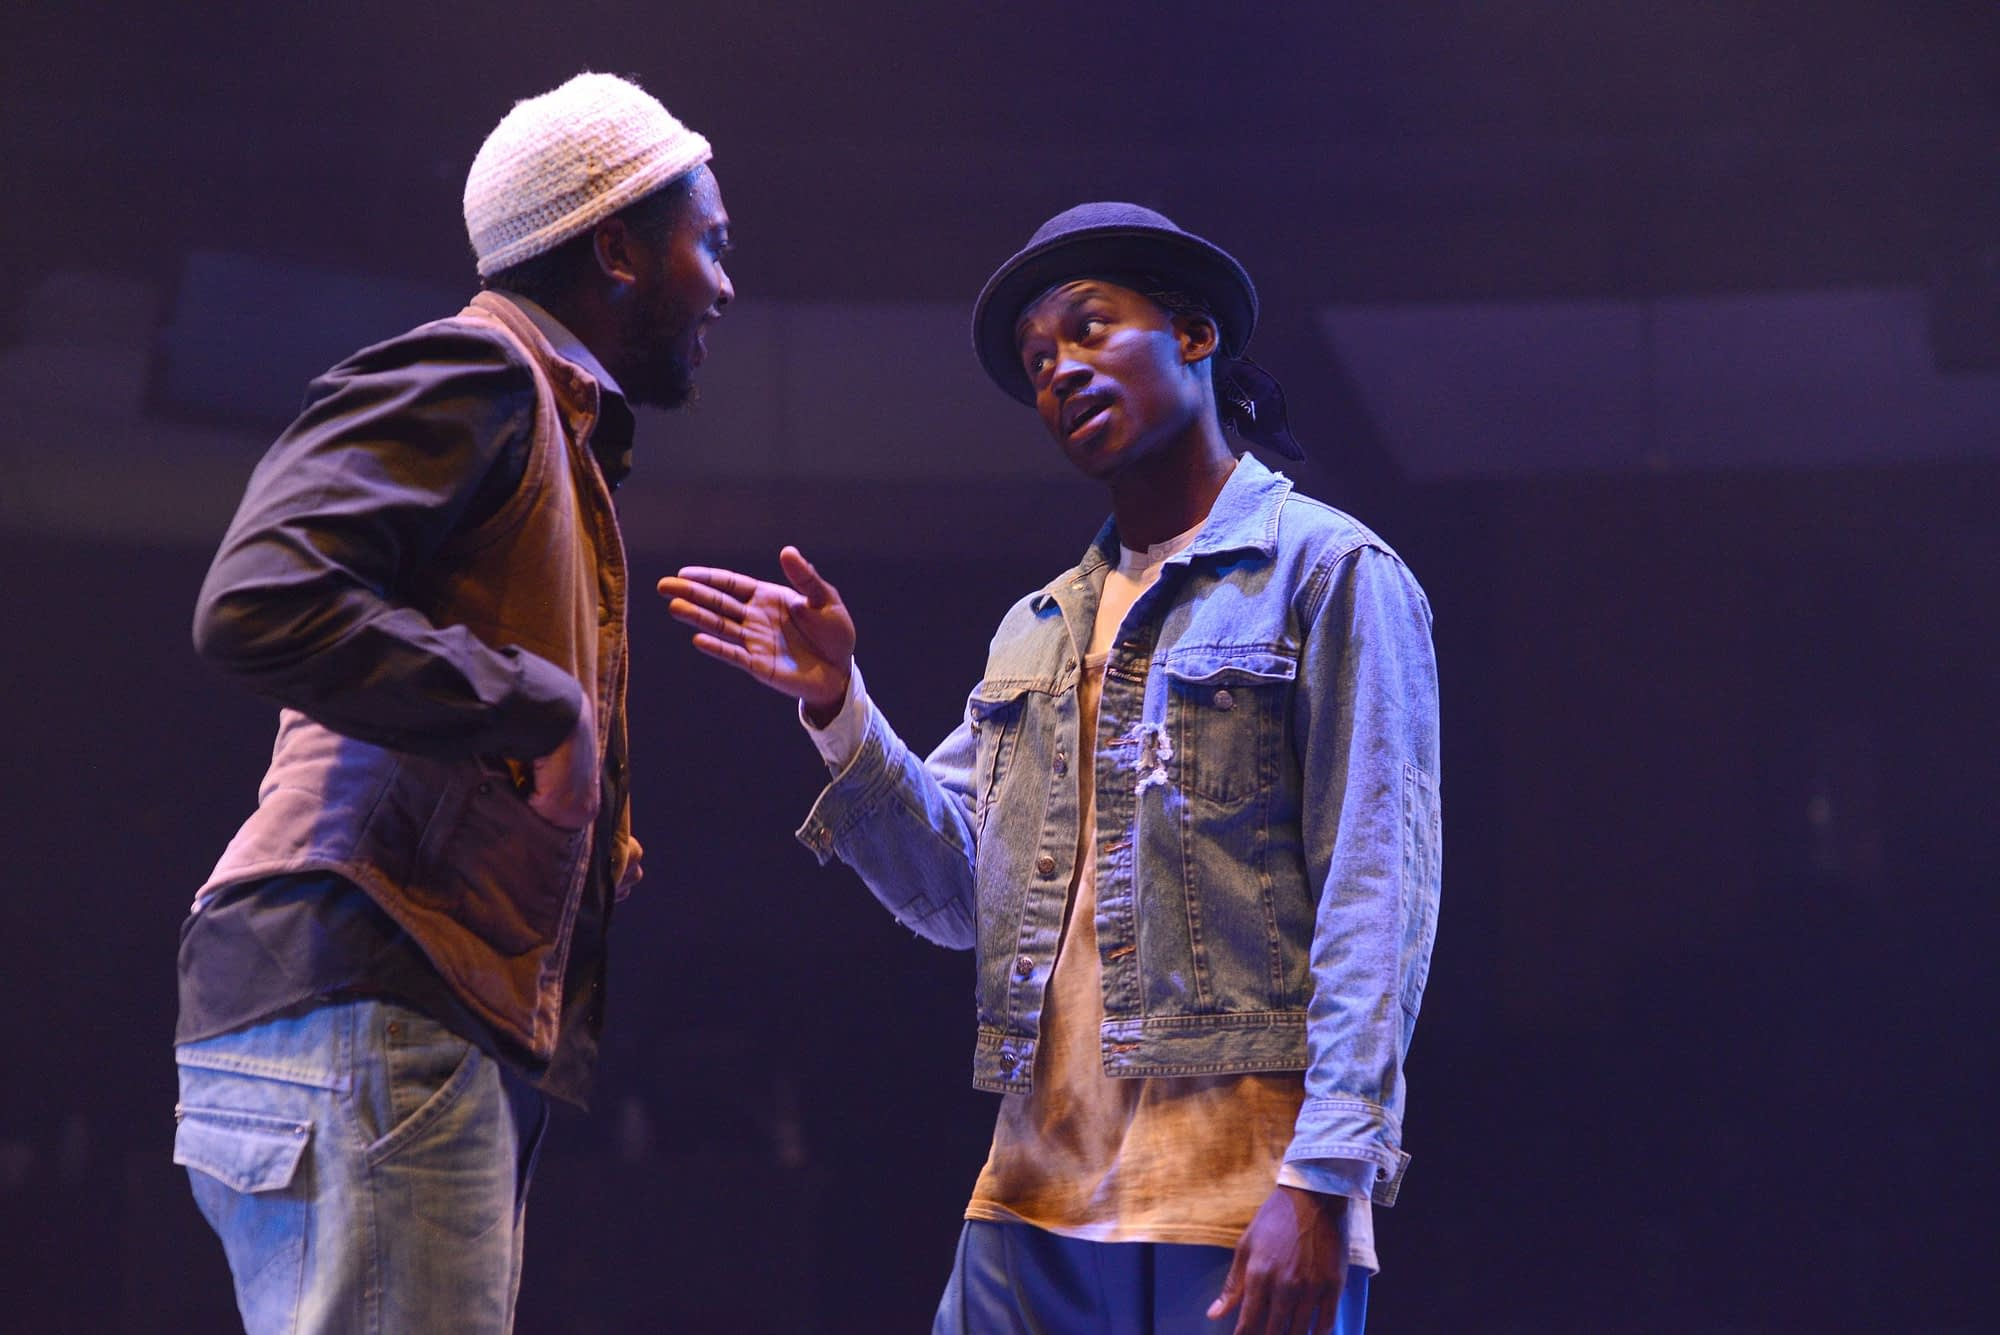 Kathu Ramabulana and Hungani Ndlovu in Pass Over directed by James Ngcobo at the Market Theatre (Photos by Suzy Bernstein)